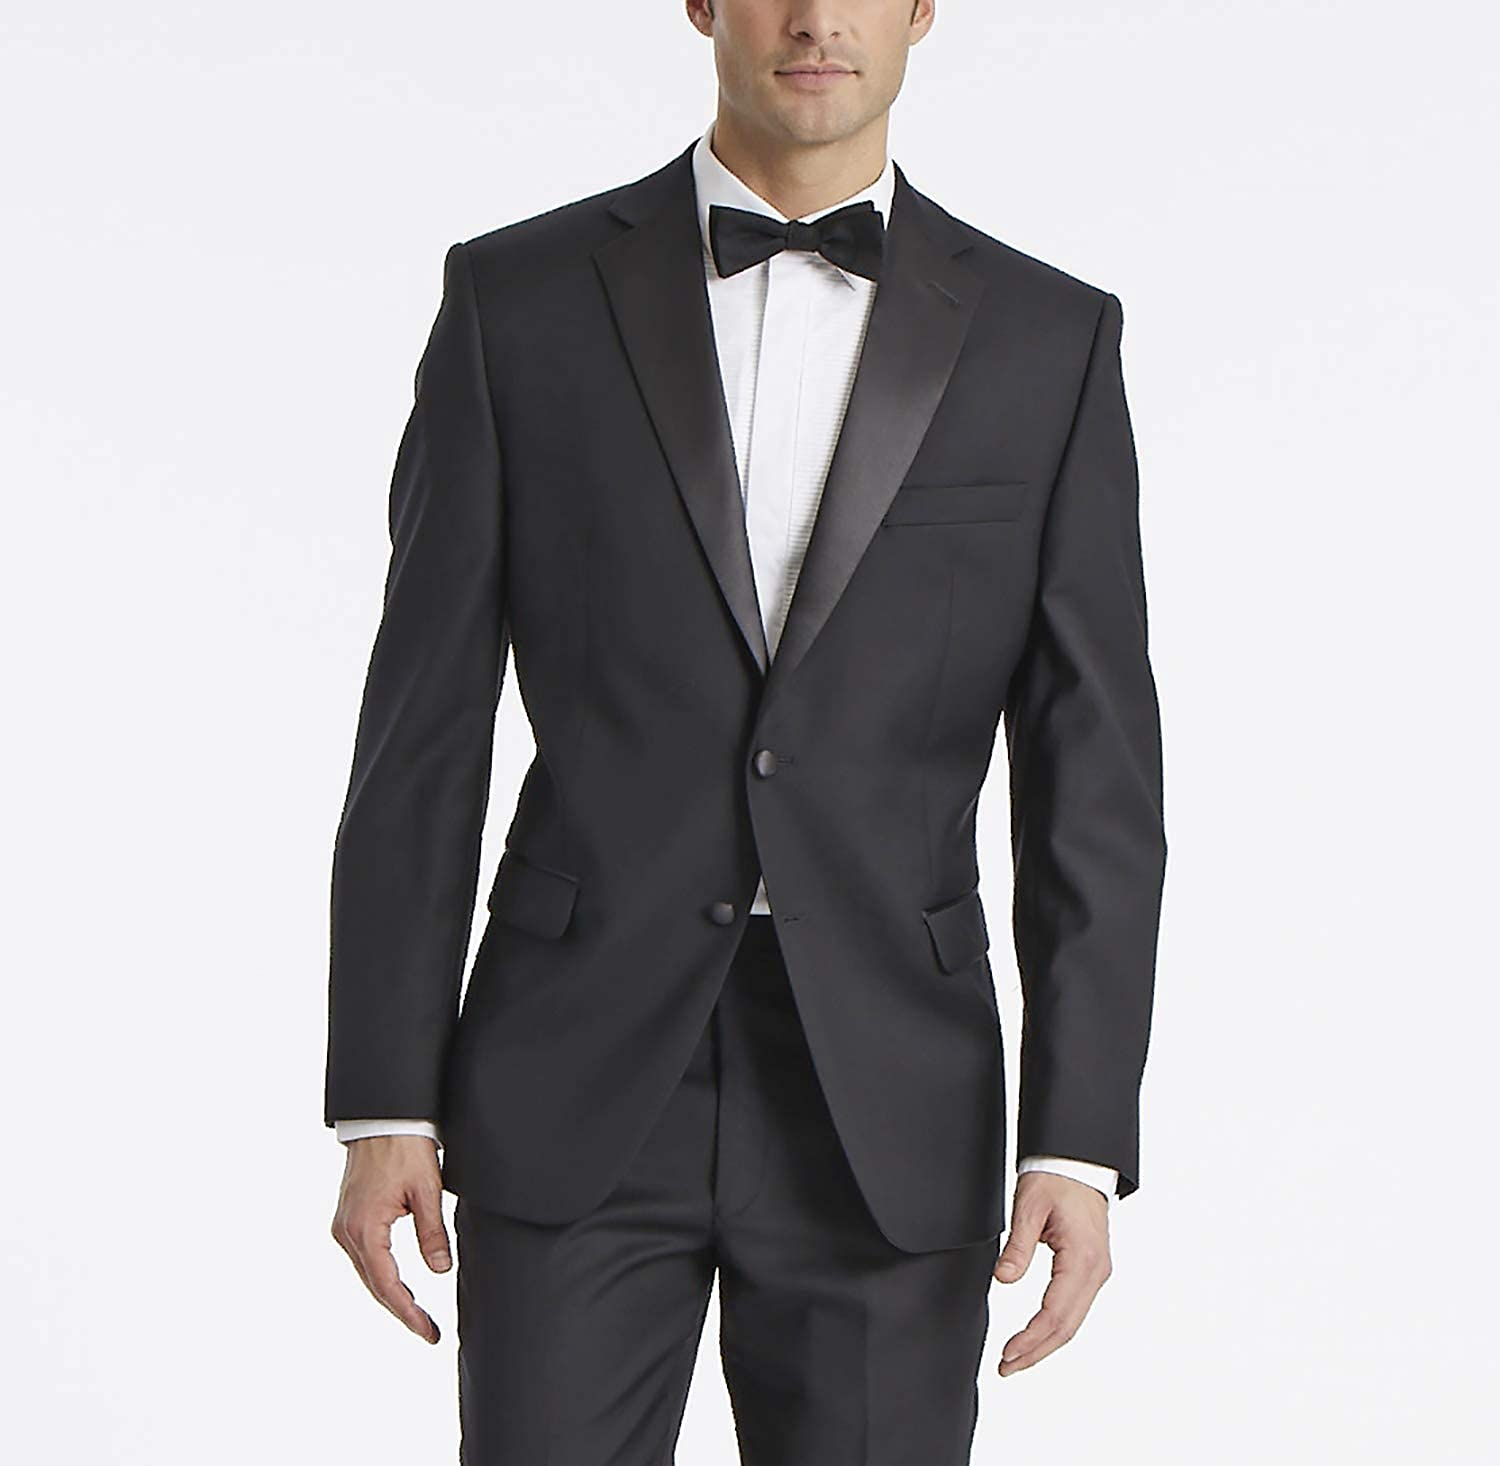 Calvin Klein Men's Modern Fit 100% Wool Tuxedo Suit Separates-Custom Jacket & Pant Size Selection